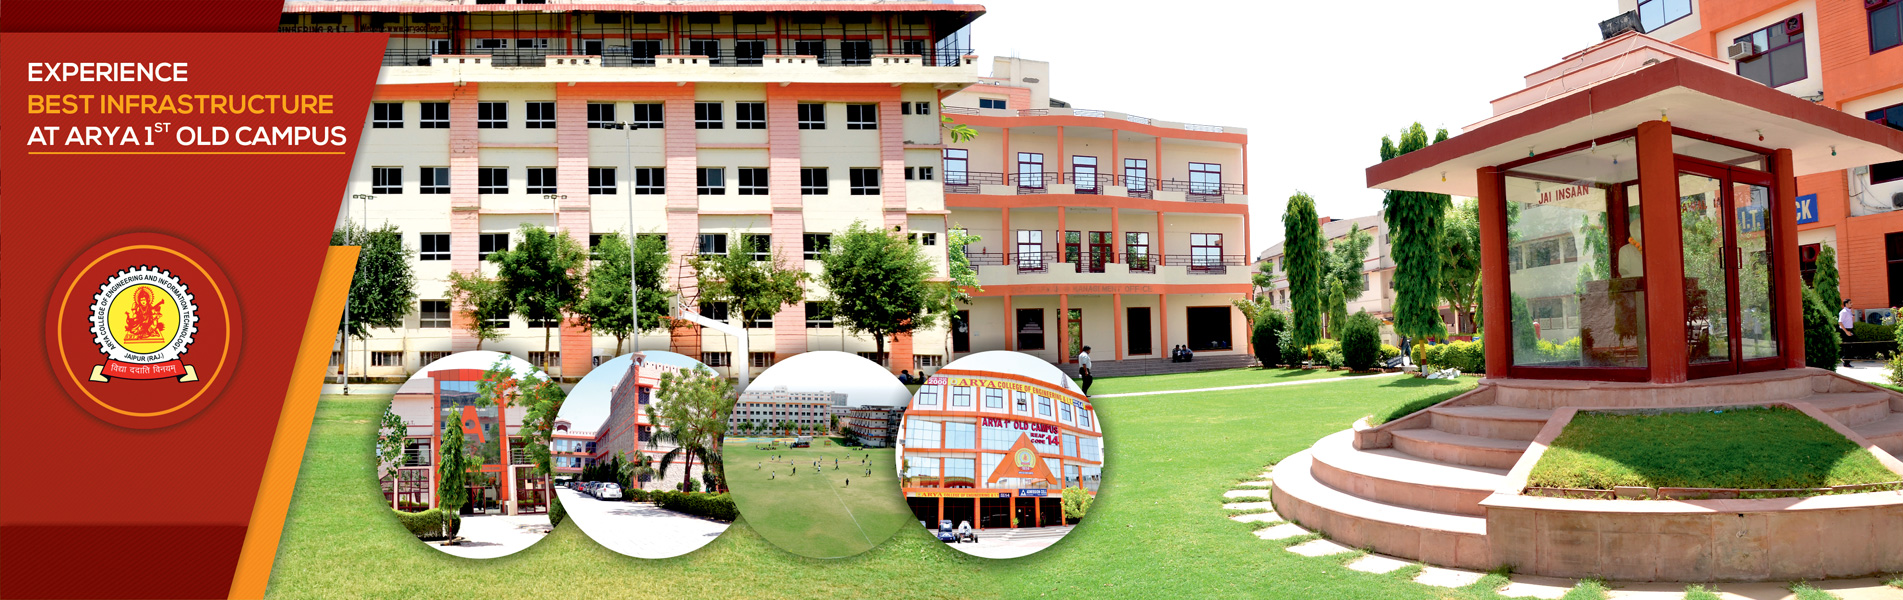 Experience-best-infrastructure-at-Arya-1st-Old-Campus